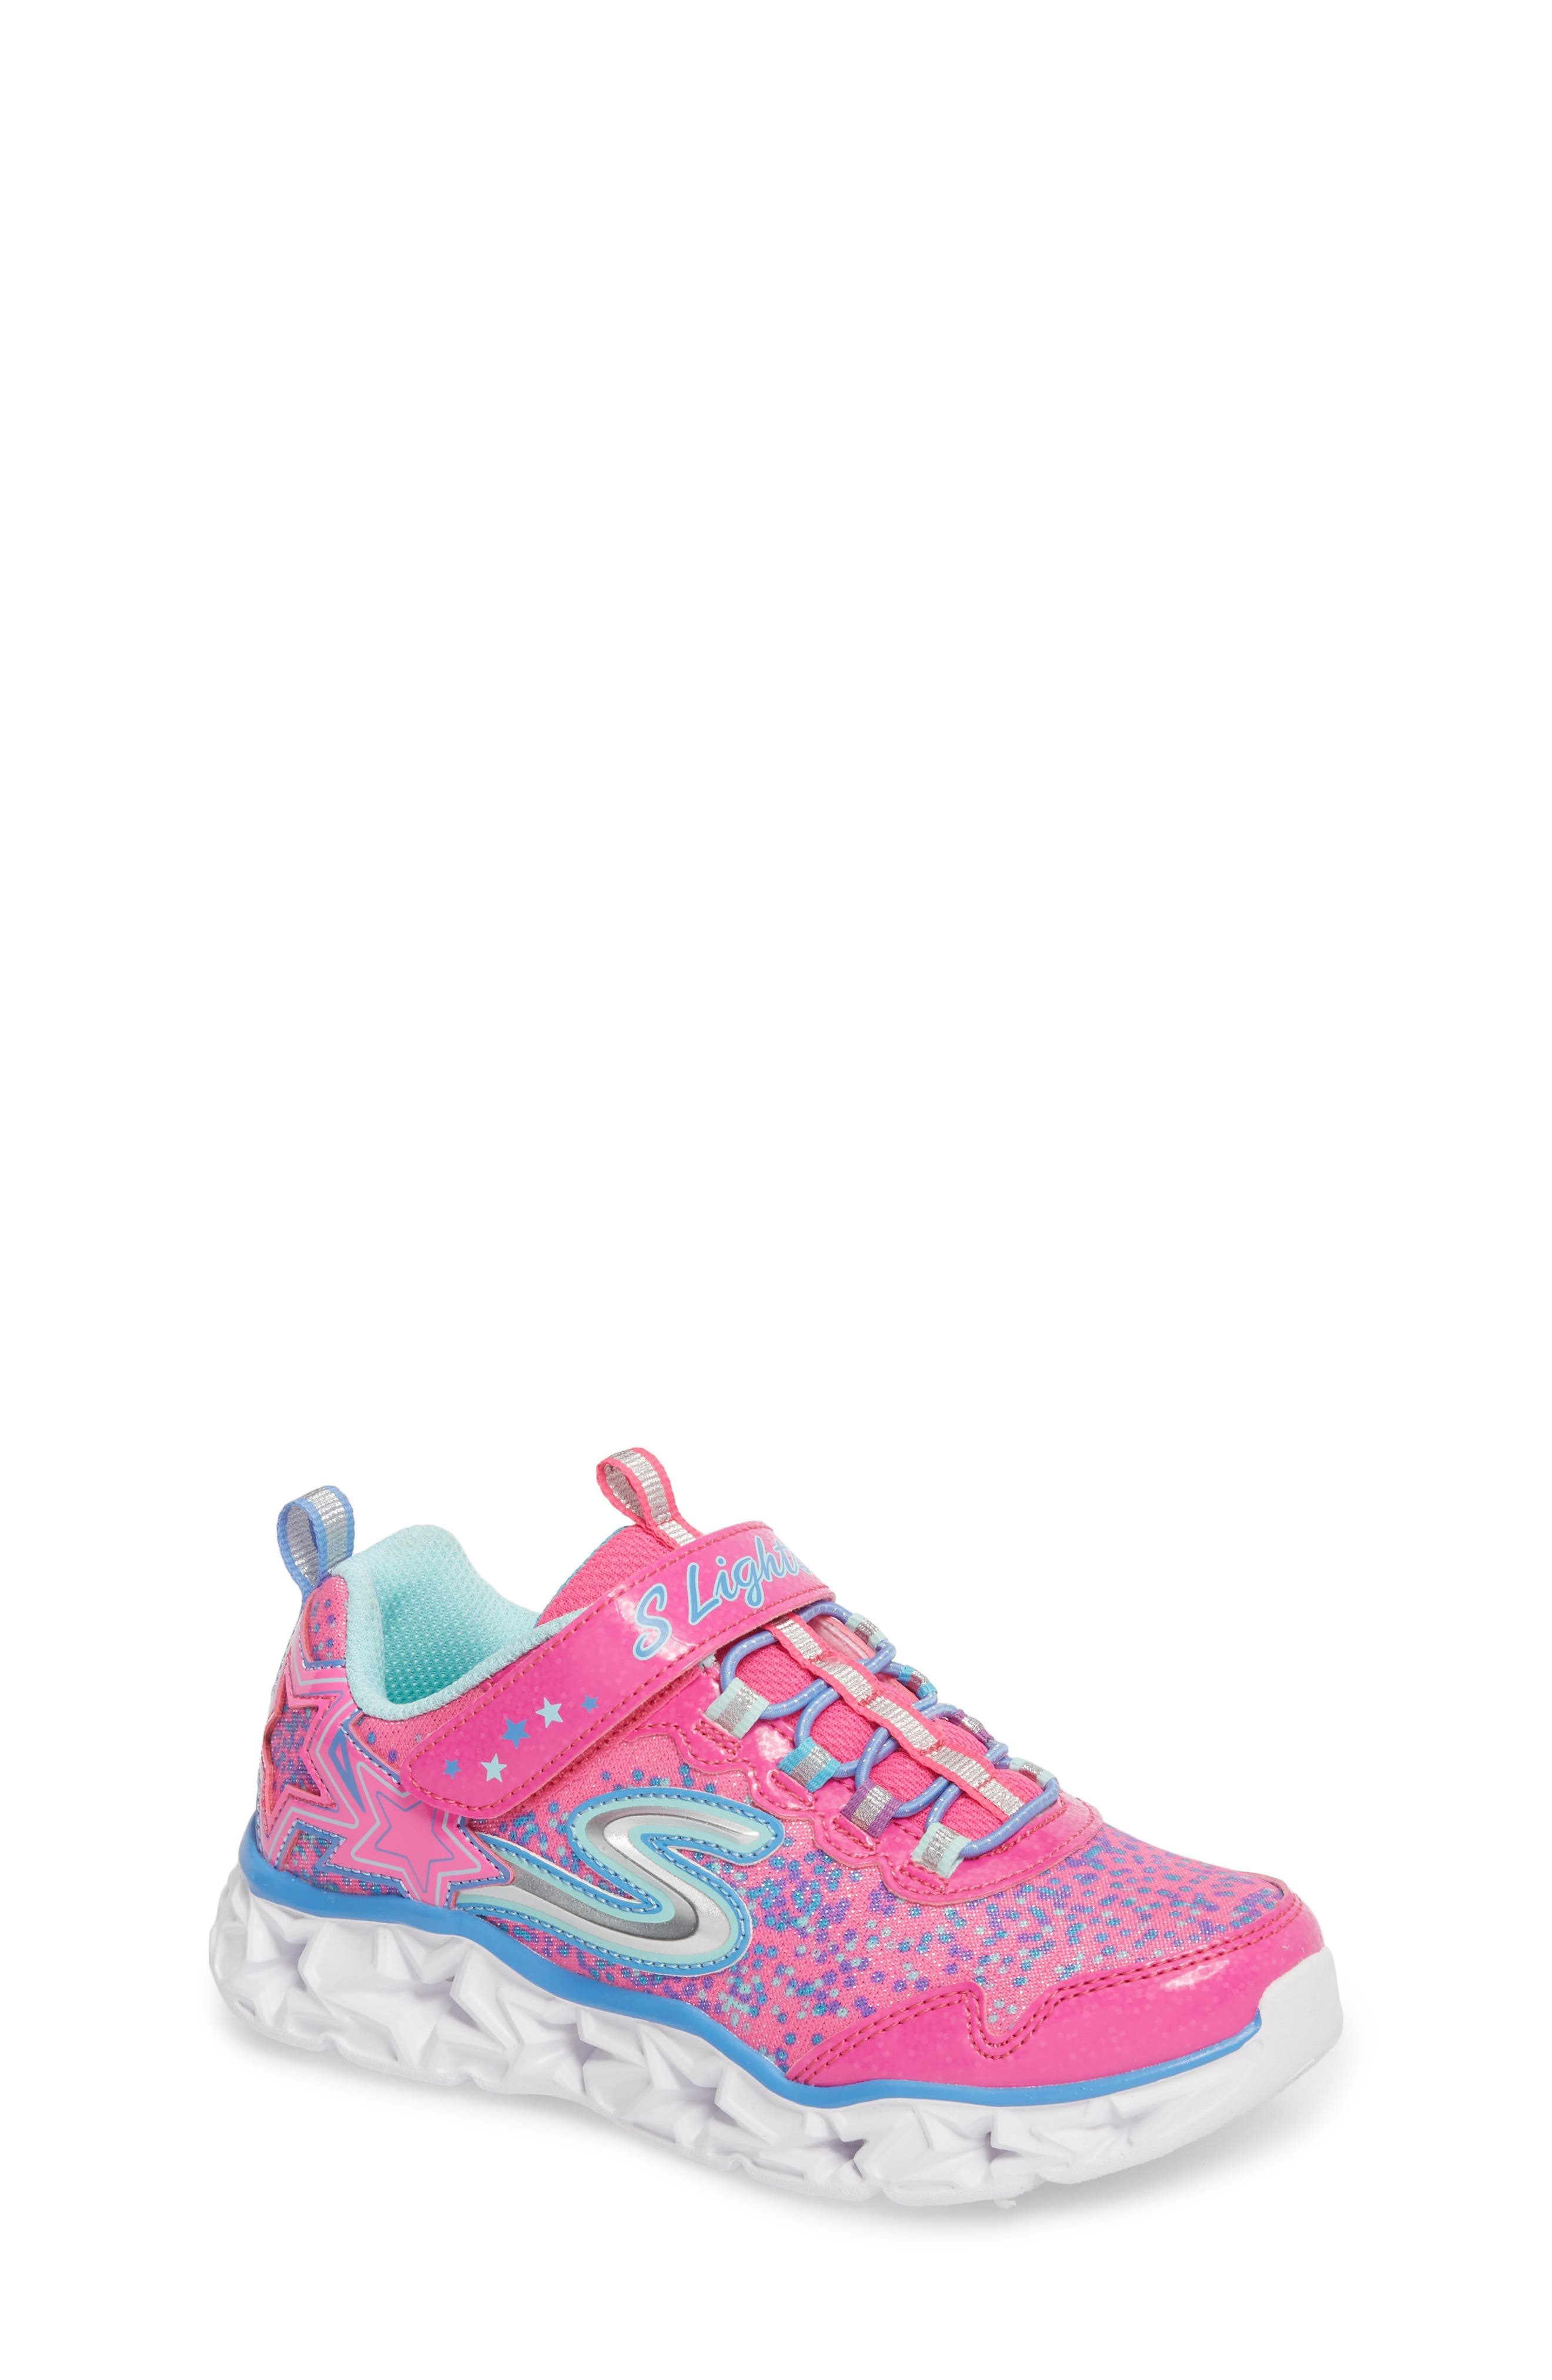 Galaxy Lights Sneakers,                             Main thumbnail 1, color,                             Neon Pink/ Multi